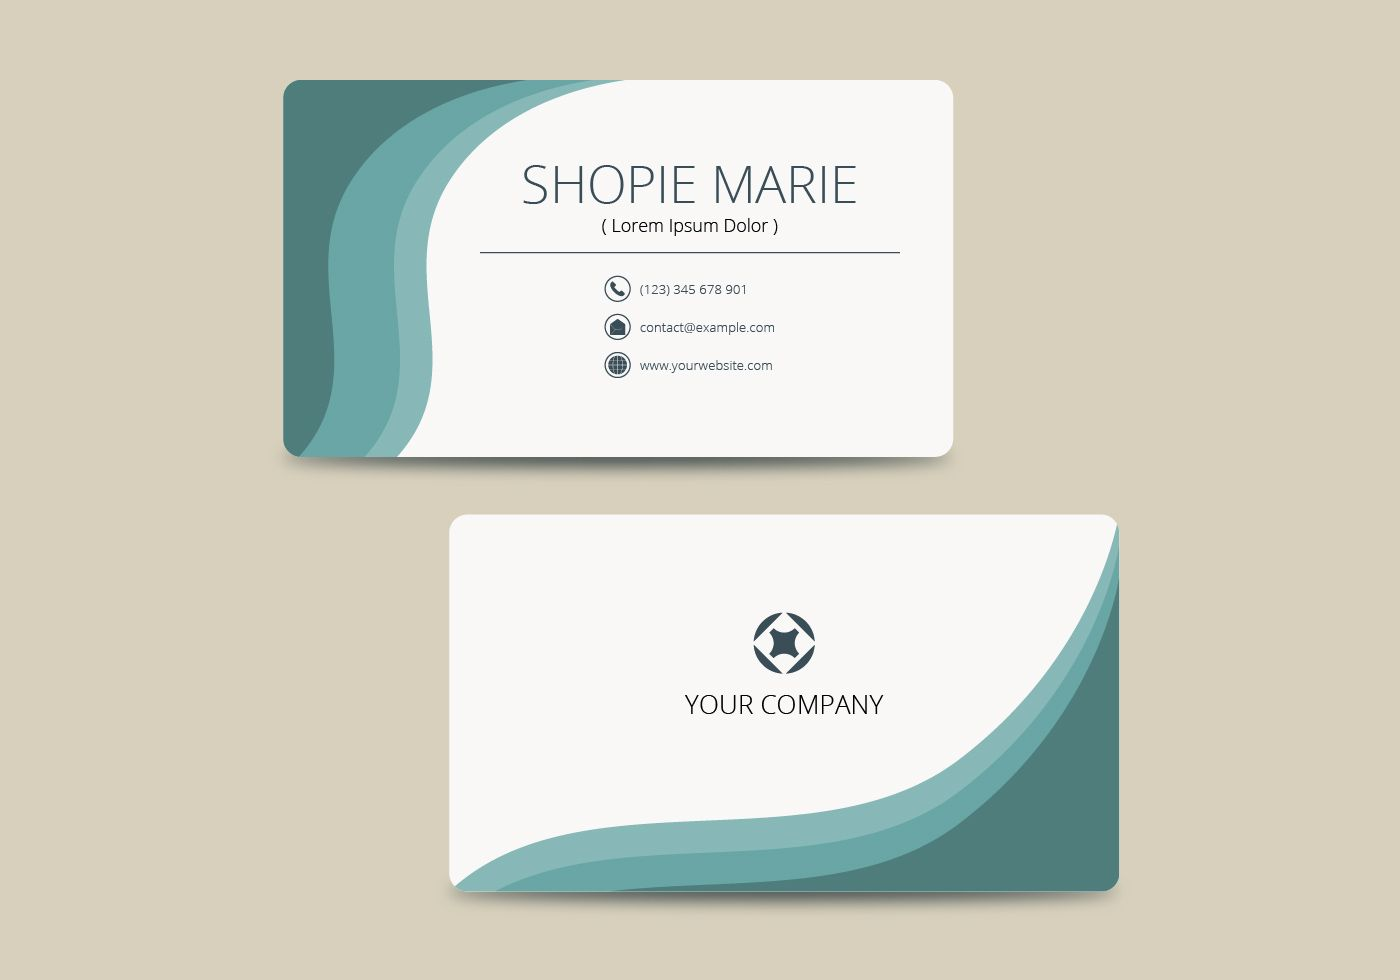 Teal Business Card Template Vector Download Free Vectors With Regar Free Business Card Templates Business Card Template Word Business Card Template Photoshop